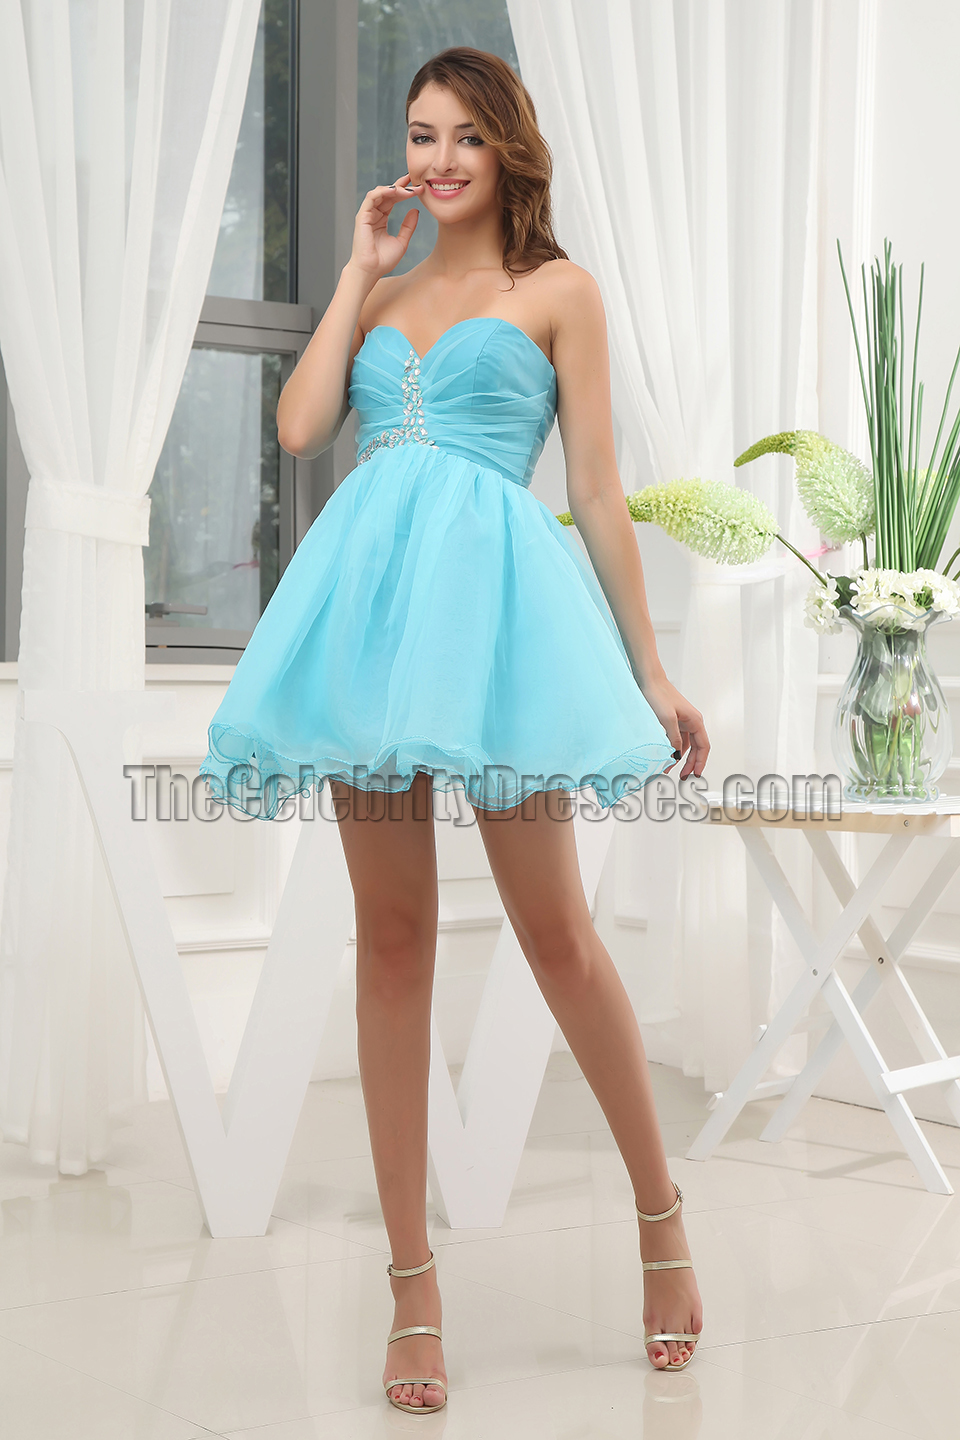 364d1166ead7 Cute Blue Strapless Short Mini Party Dress Homecoming Dresses -  TheCelebrityDresses